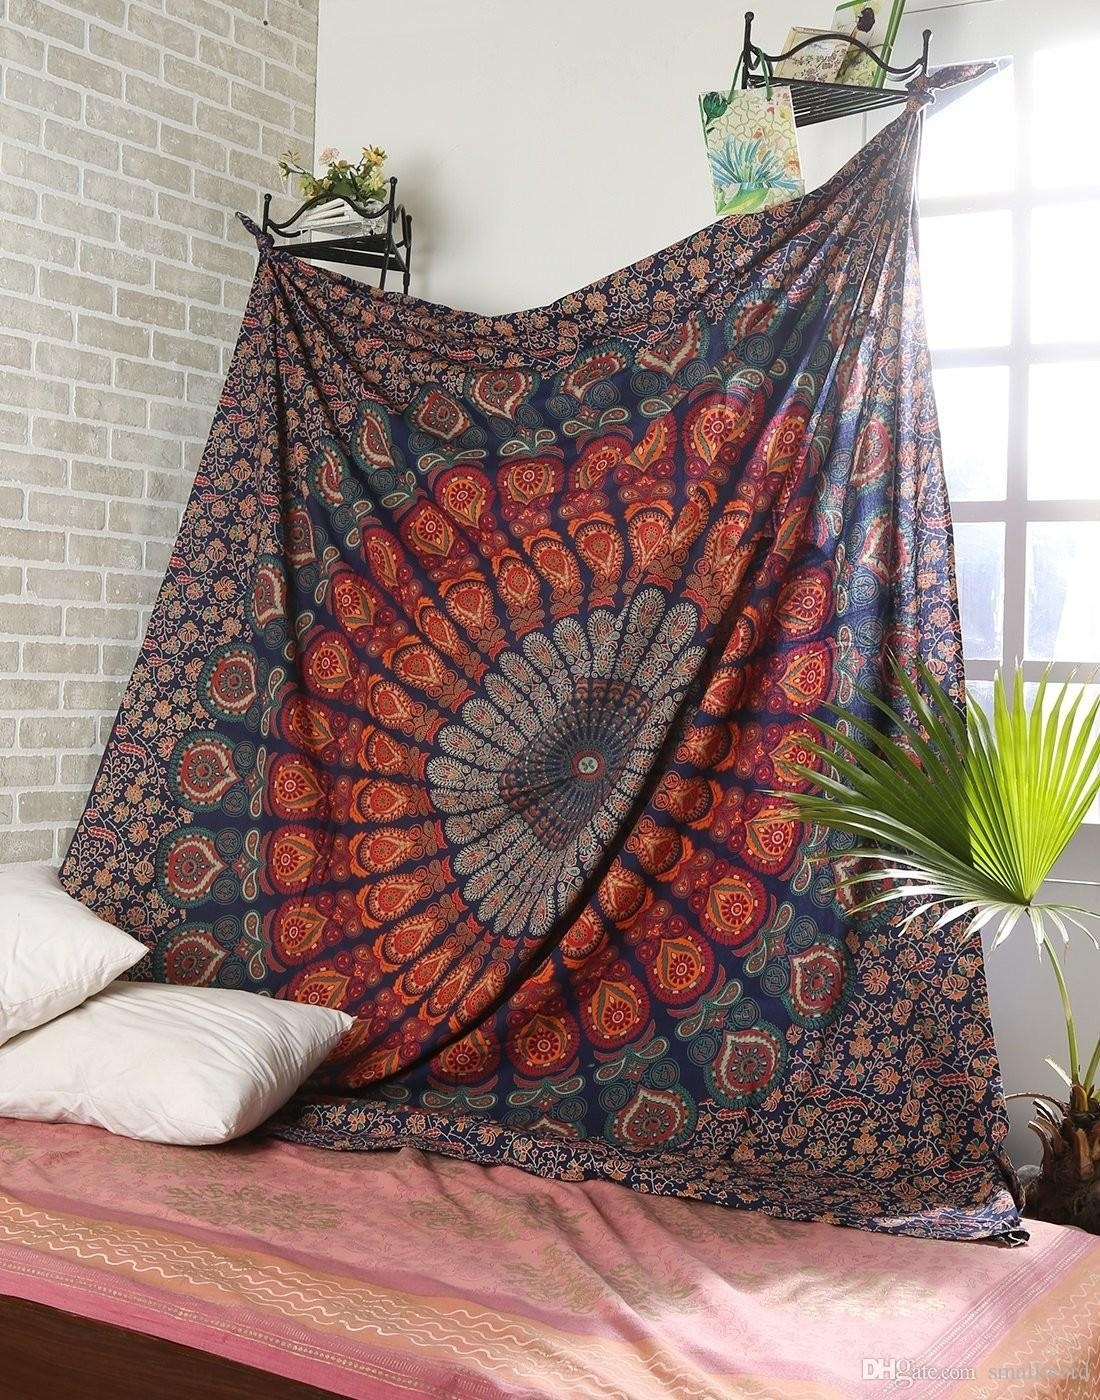 Mandala Tapestry Indian Wall Hanging Boho Home Decor Tapestry Intended For Most Current Indian Fabric Wall Art (View 10 of 15)